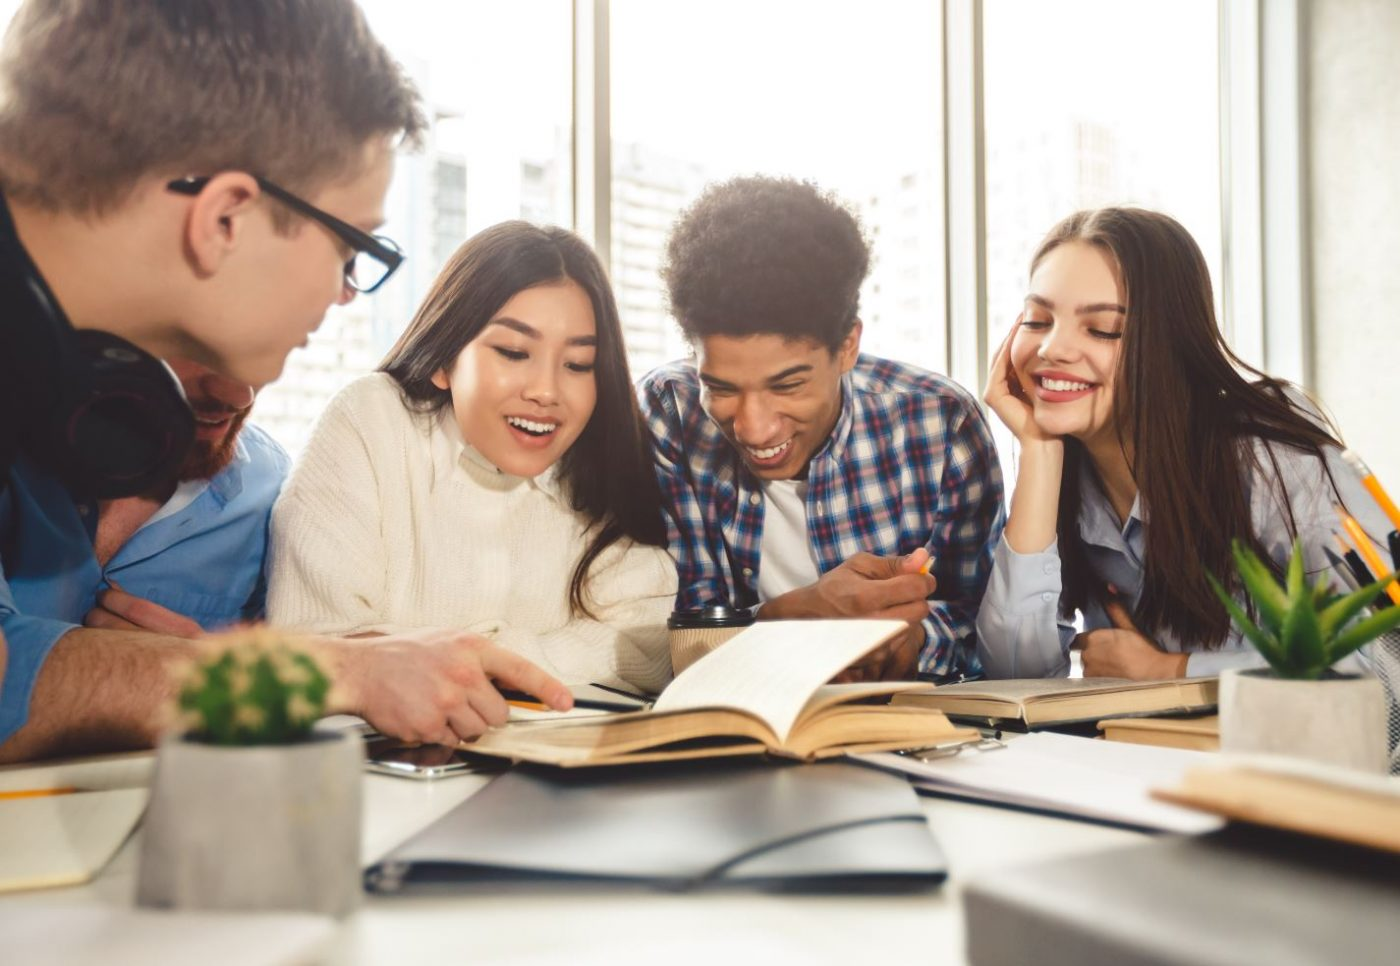 4 students reviewing textbooks scattered across a table